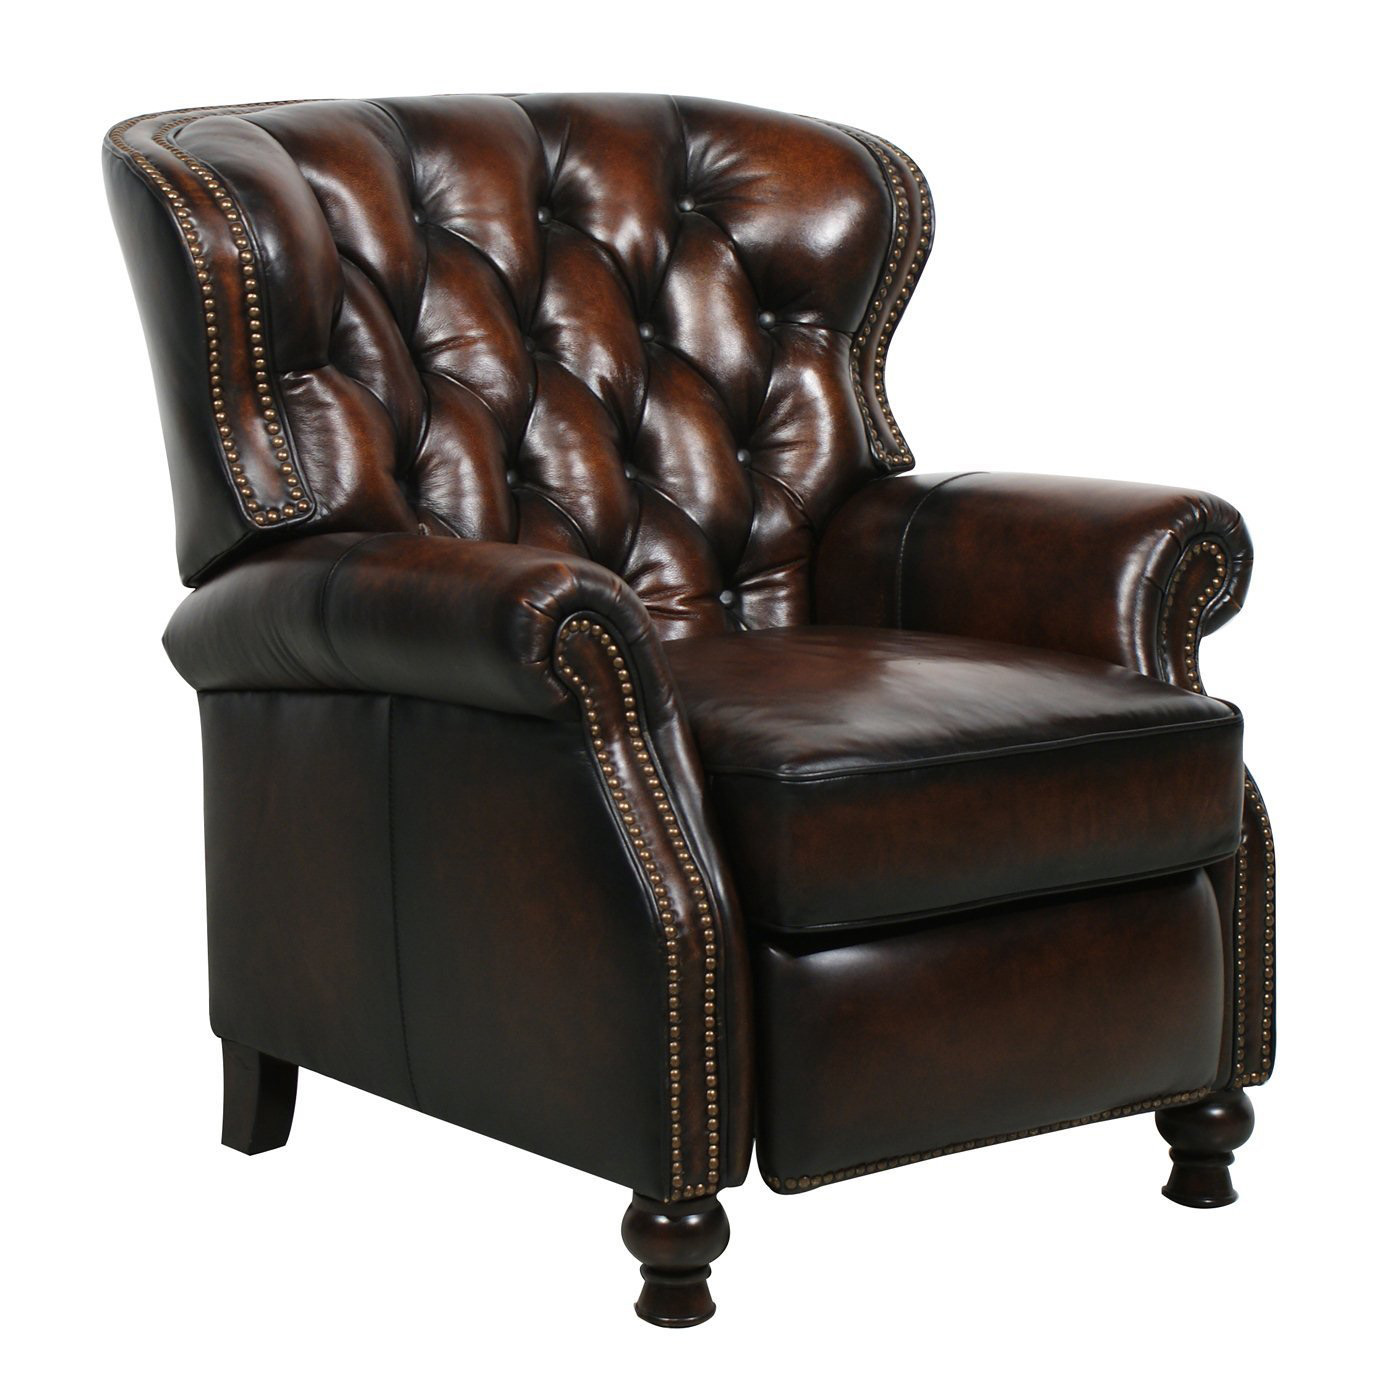 Barcalounger Presidential Ii Leather Recliner Chair